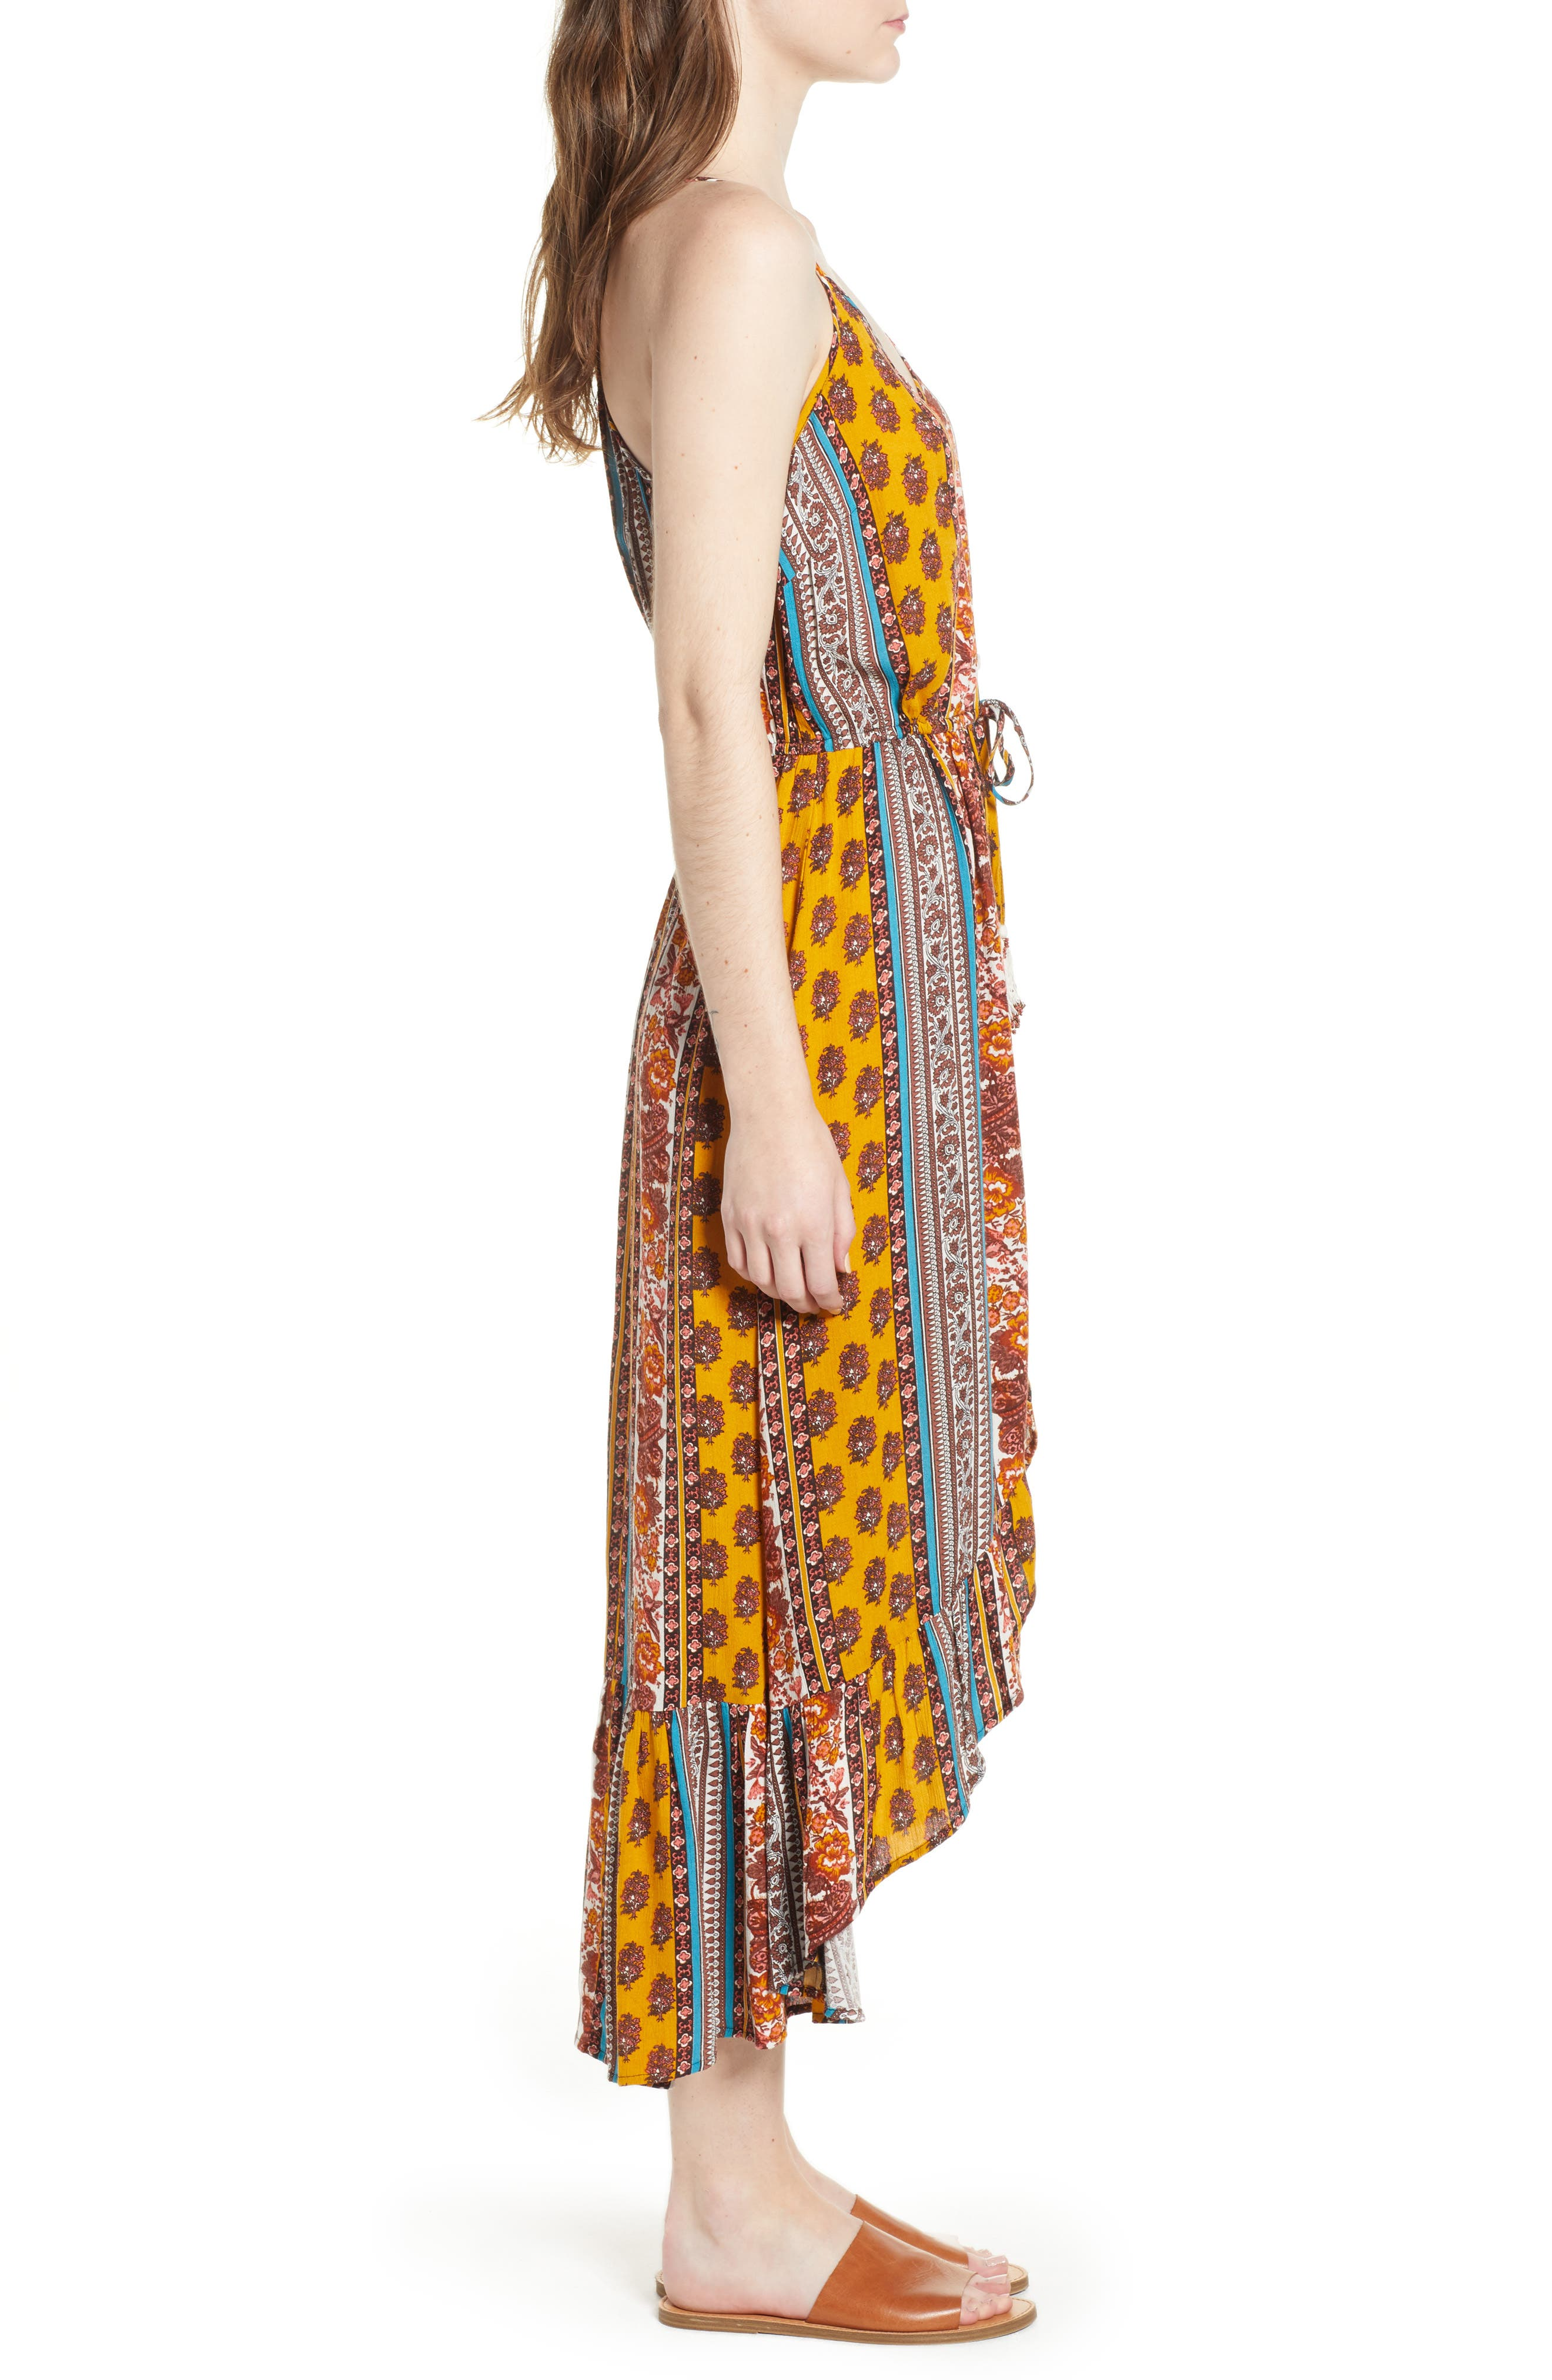 BAND OF GYPSIES,                             Geo Stripe High/Low Dress,                             Alternate thumbnail 3, color,                             700